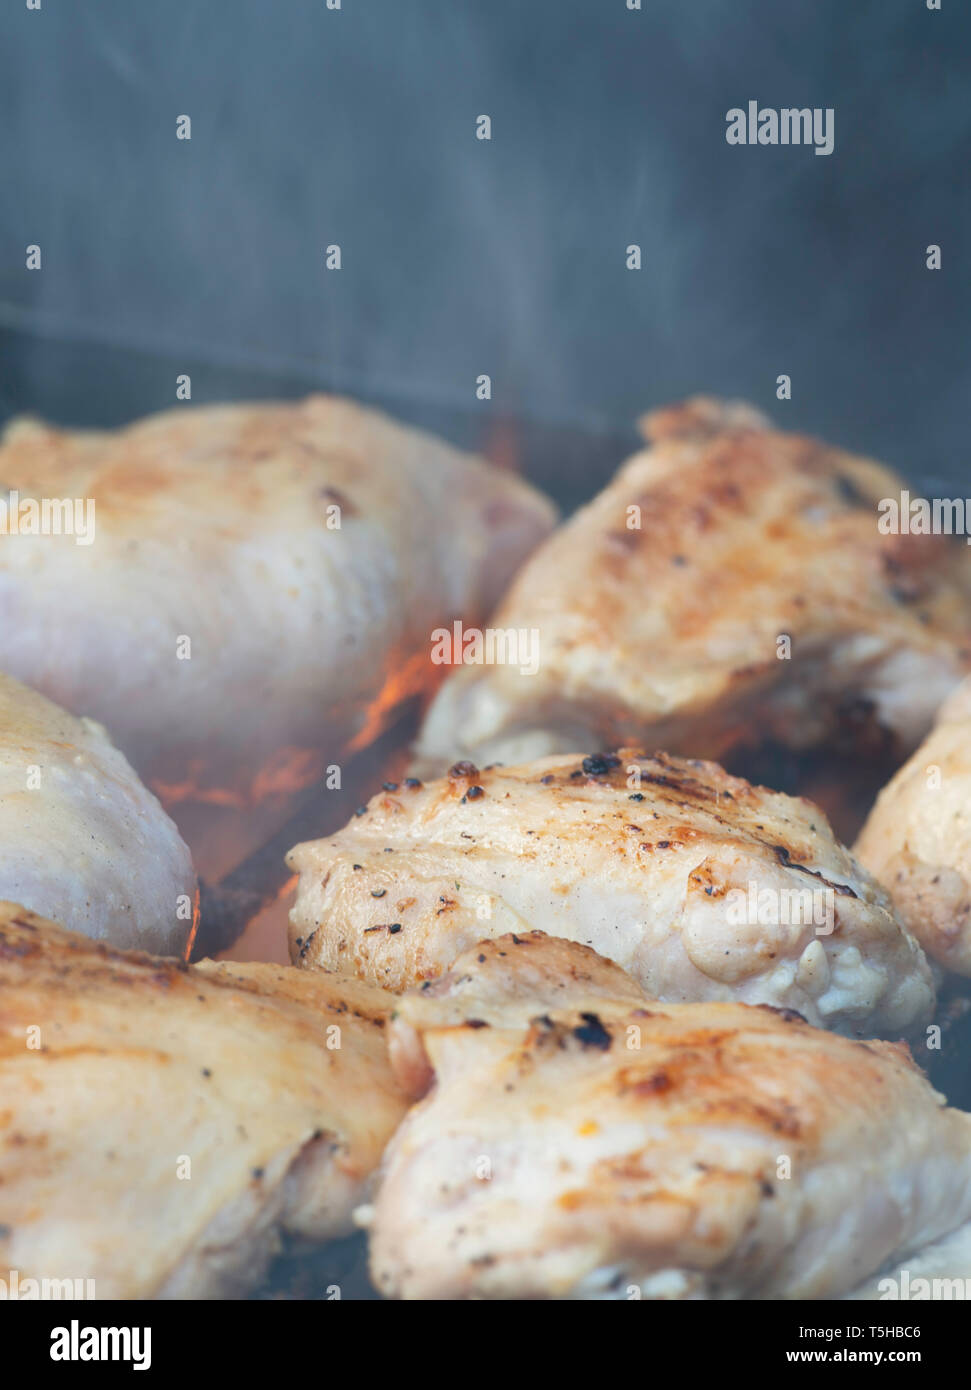 grilling chicken tights on bbq  for a party at a backyard, outdoor - Stock Image